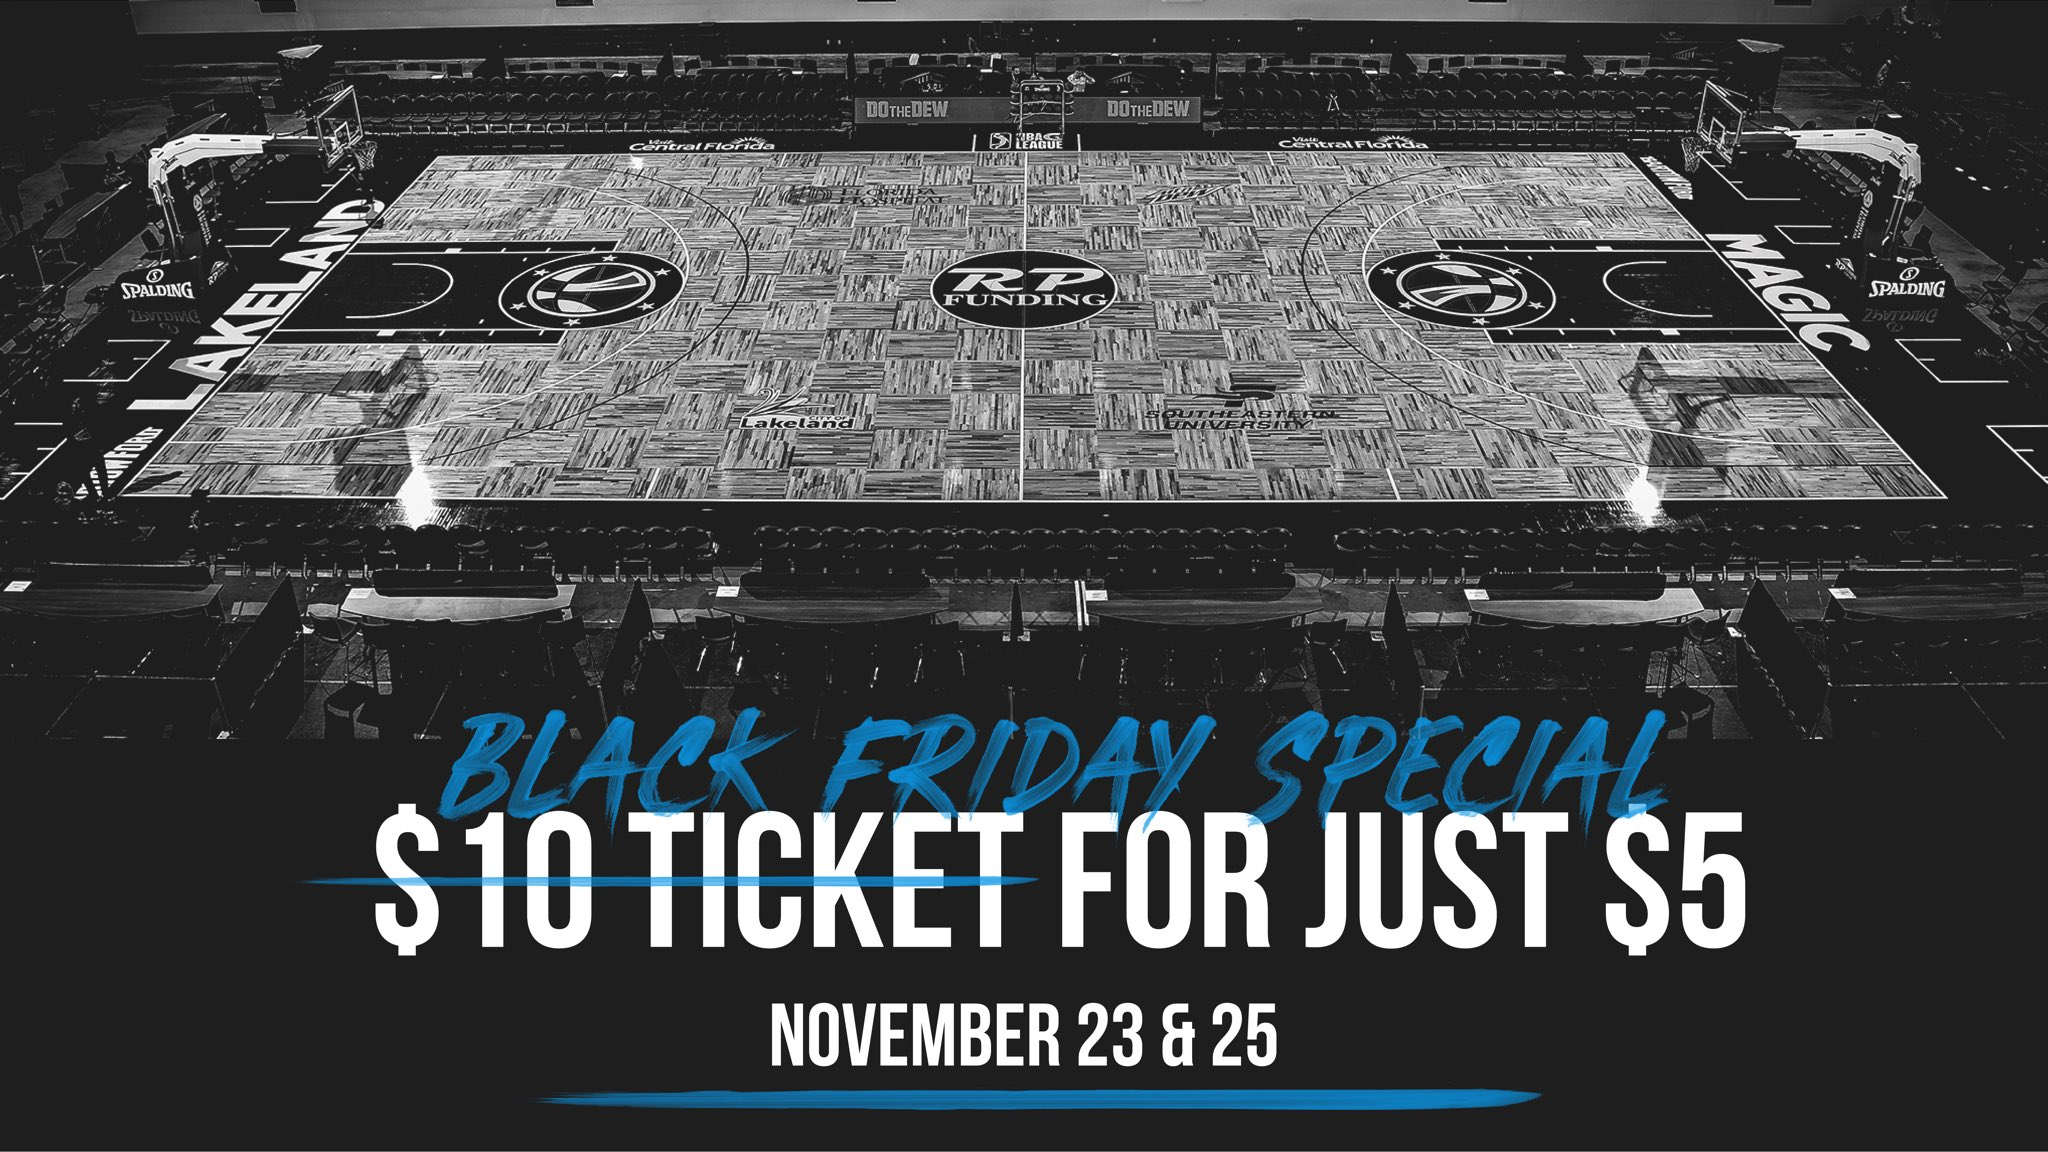 Lakeland Magic On Twitter Special Offer You Don T Have To Wake Up Early To Find The Best Deals On Black Friday Score A Ticket To The Game This Friday And